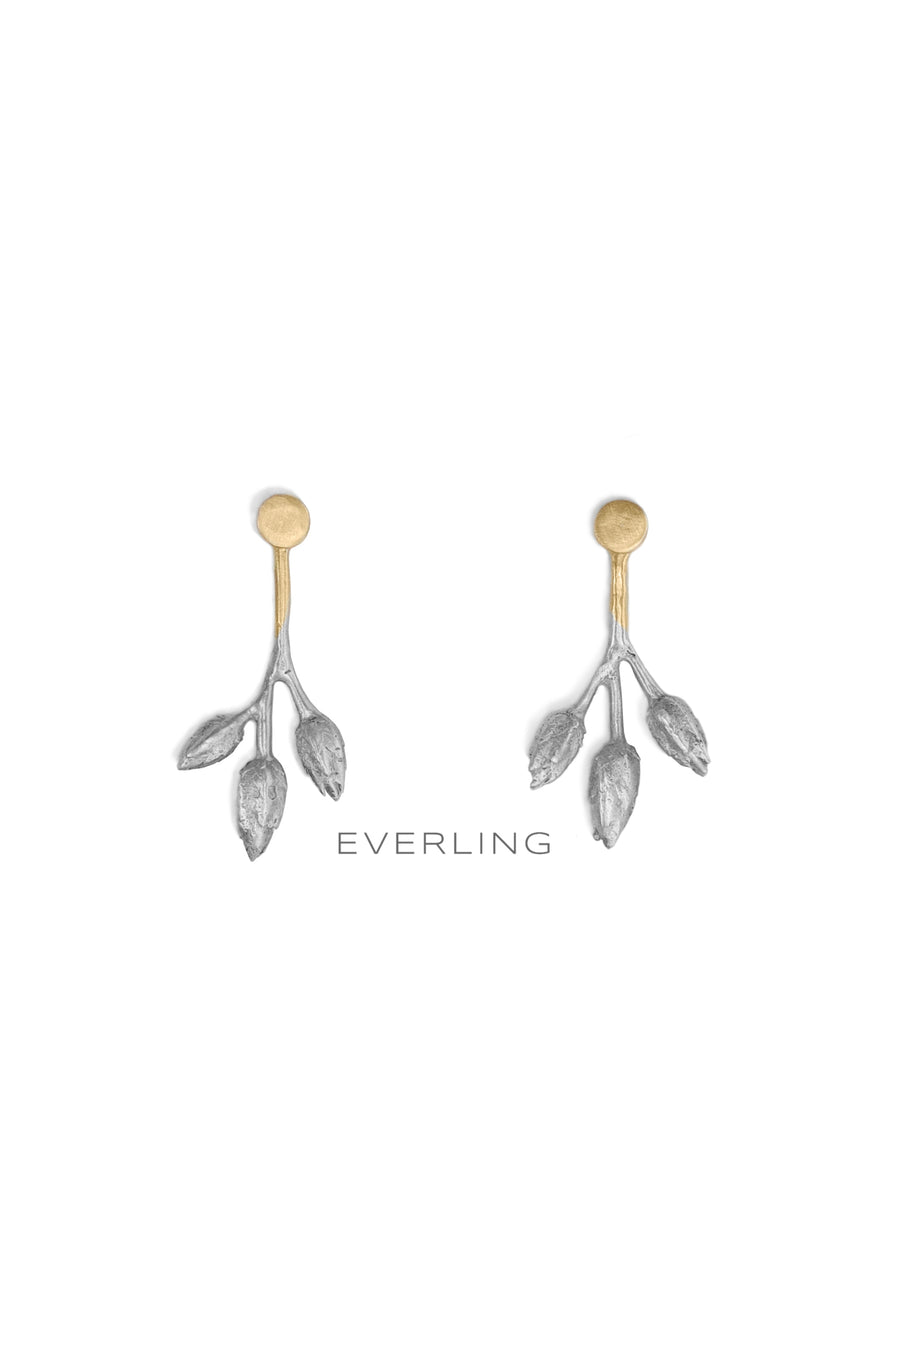 Recycled 14K Yellow Gold and Sterling Silver Three-pod Earring Jackets and Stud Earrings. #organicjewelry #designerjewelry www.everlingjewelry.com